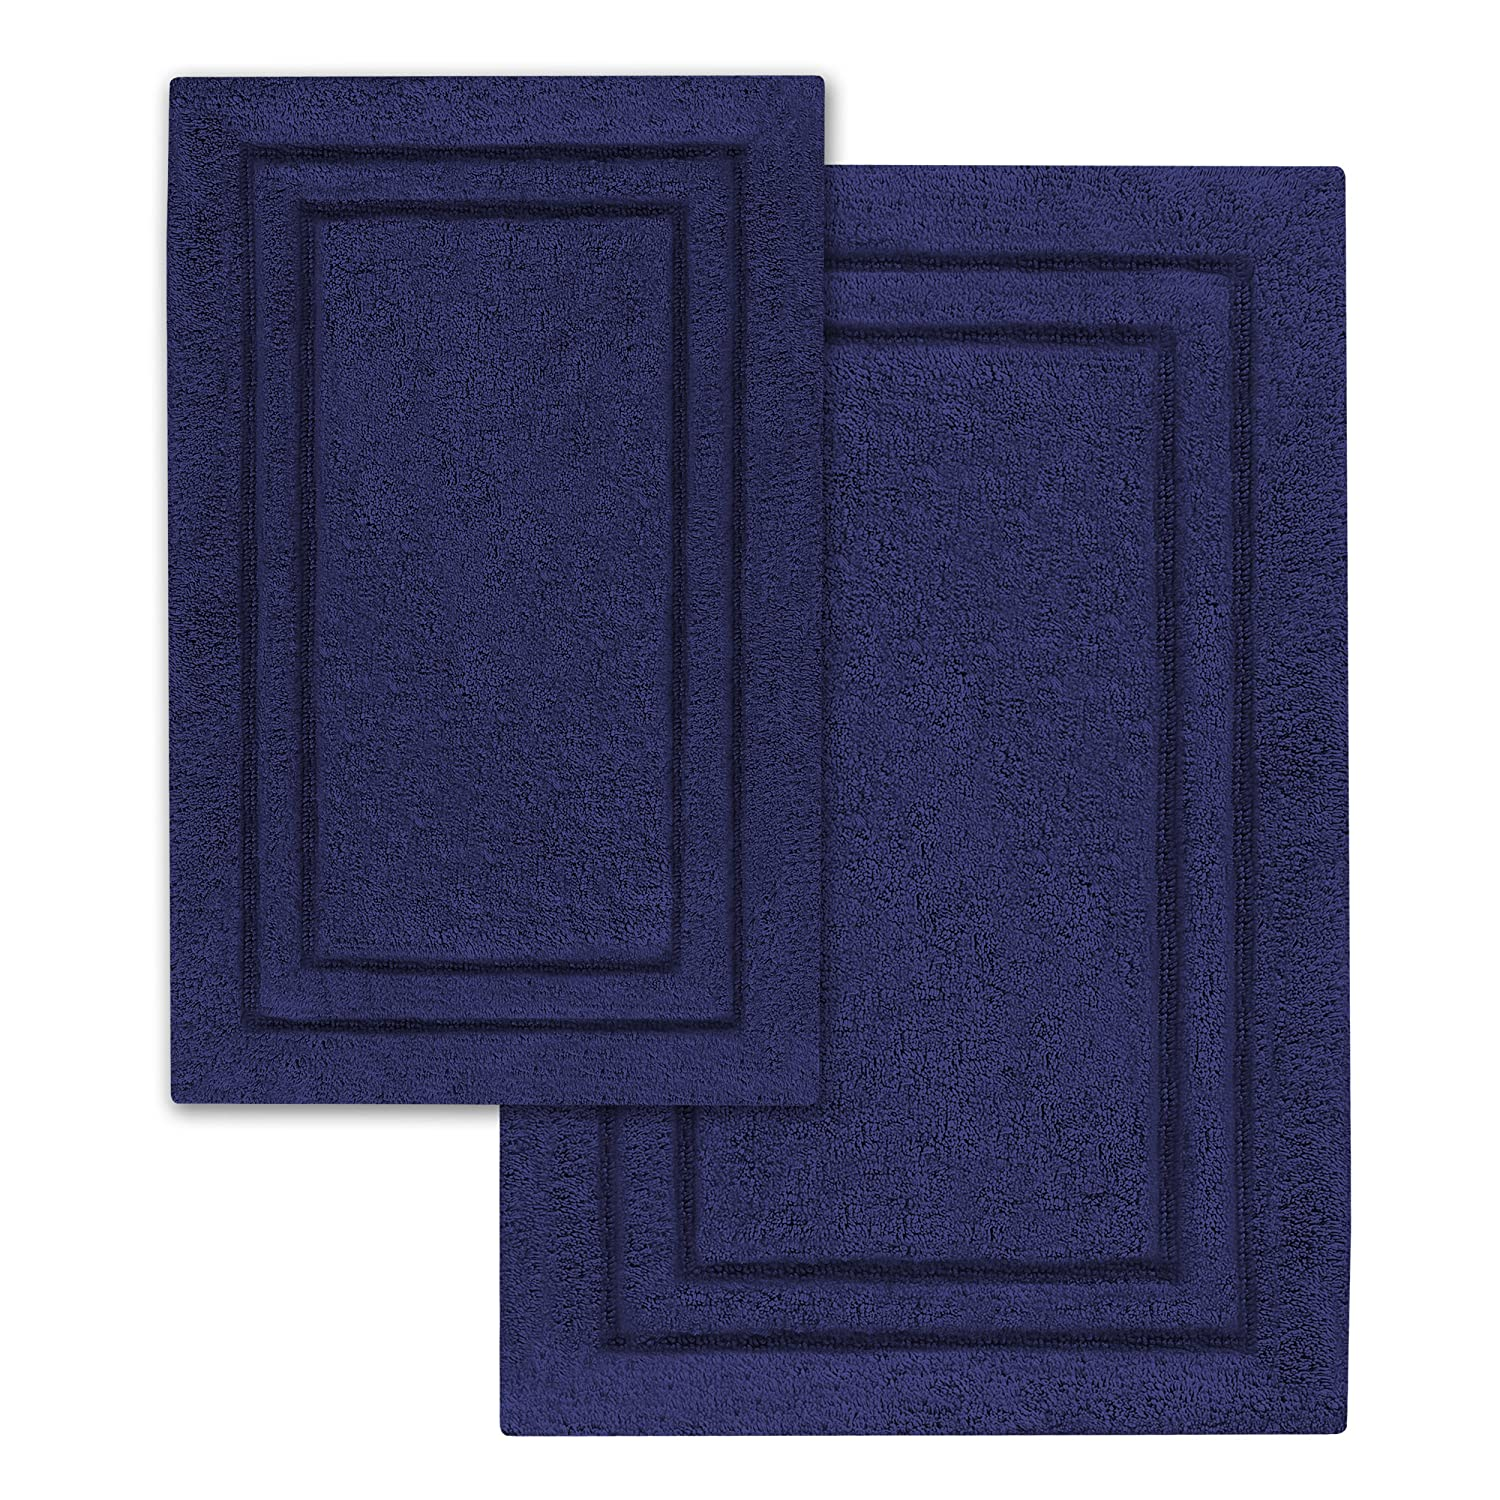 Charmant Amazon.com: Superior 2 Pack Bath Rugs, Premium 100% Combed Cotton With Non  Slip Backing, Soft, Plush, Fast Drying And Absorbent   Navy Blue, ...